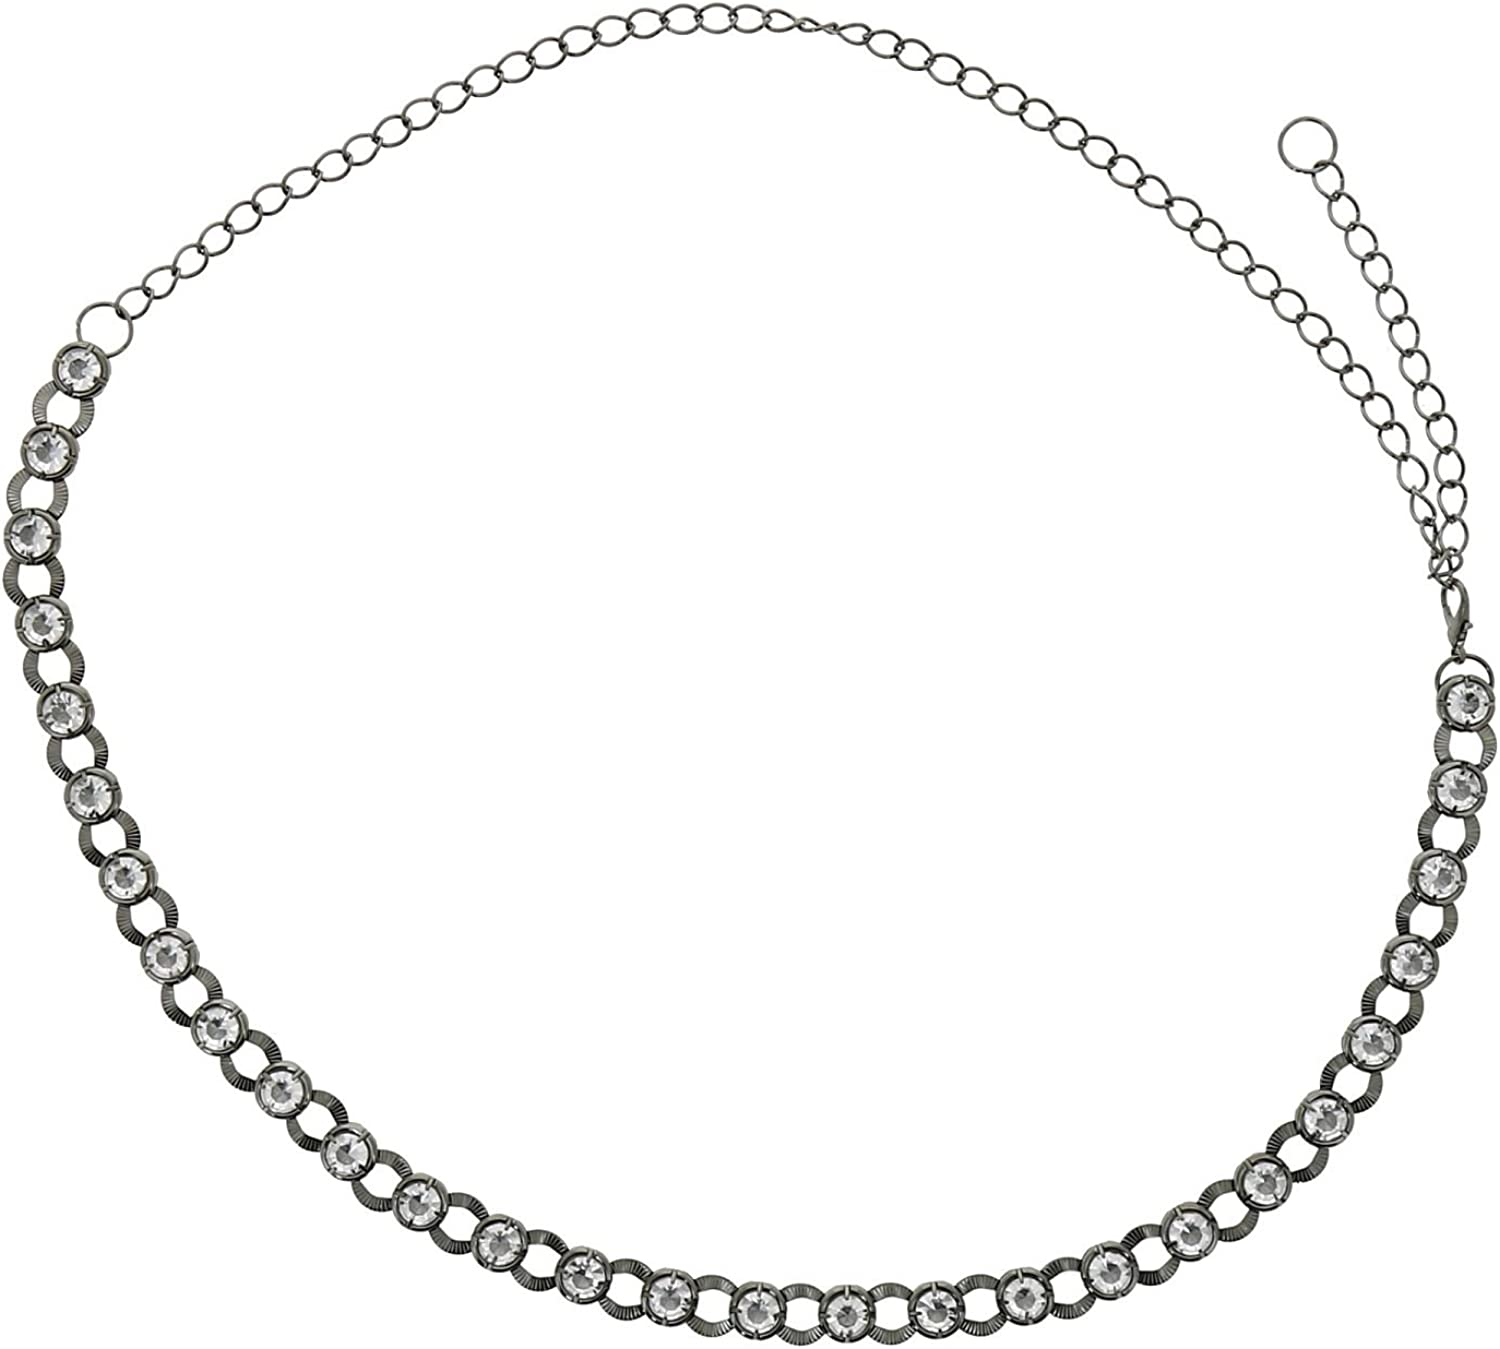 FASHIONGEN Womans Lady Fashion Metal Chain Style Belt with Strass DIDO